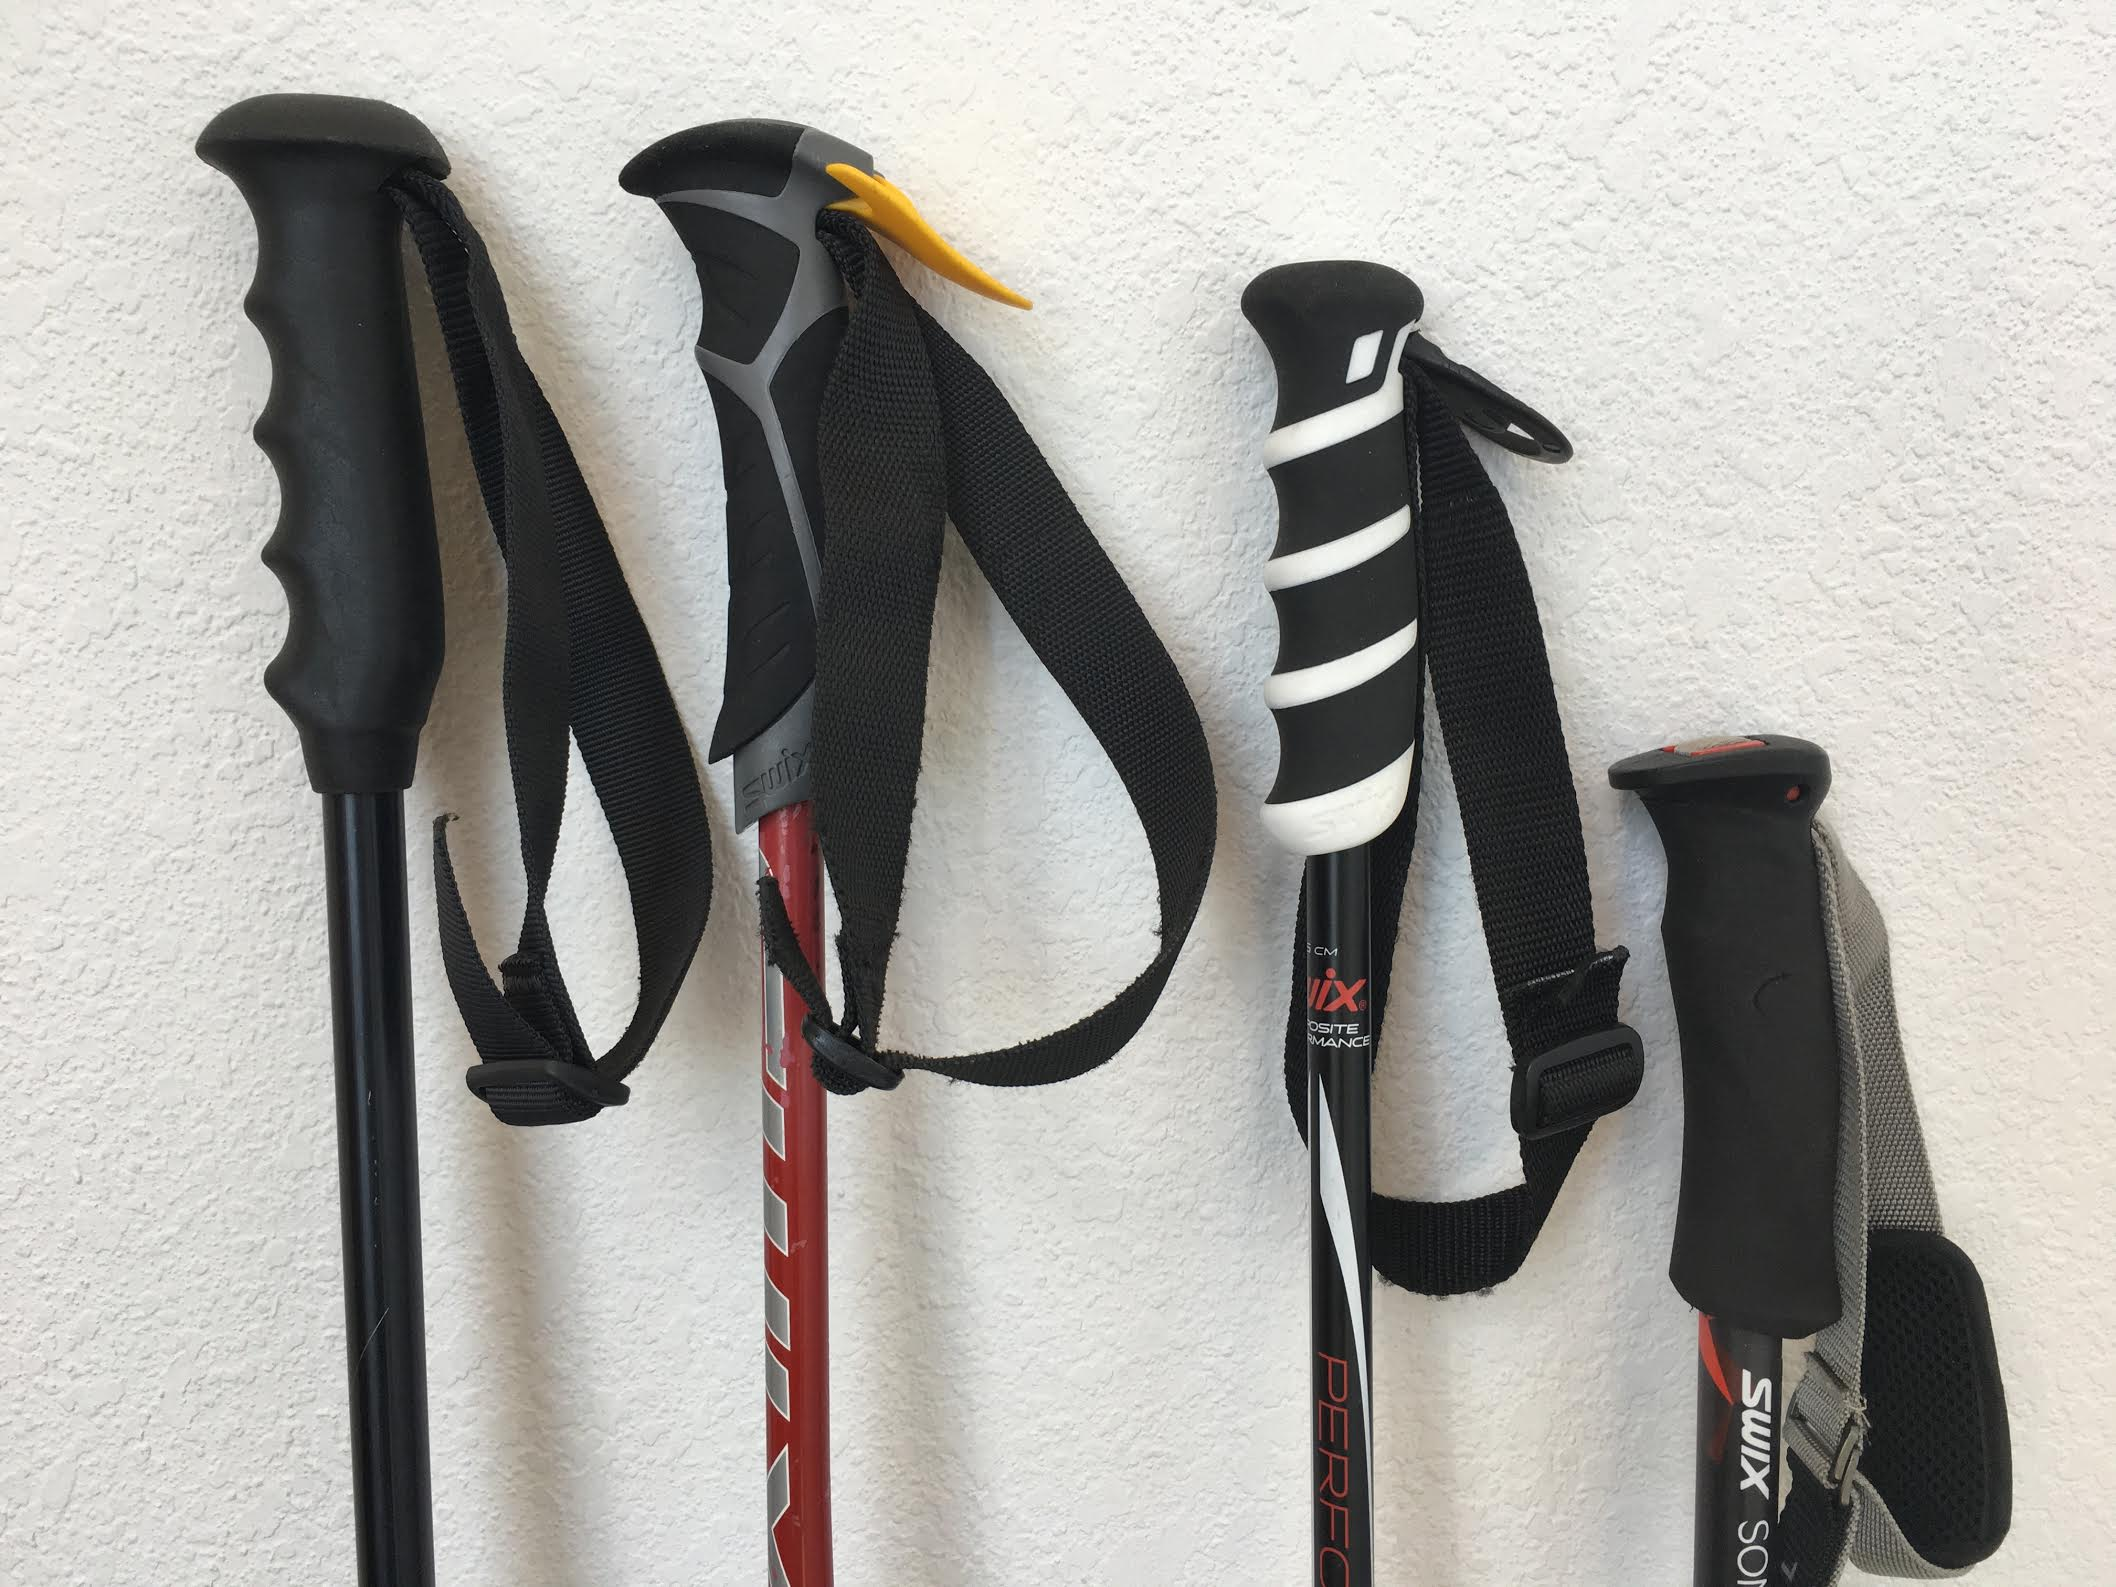 How To Size Ski Poles - EliteSkiing.com